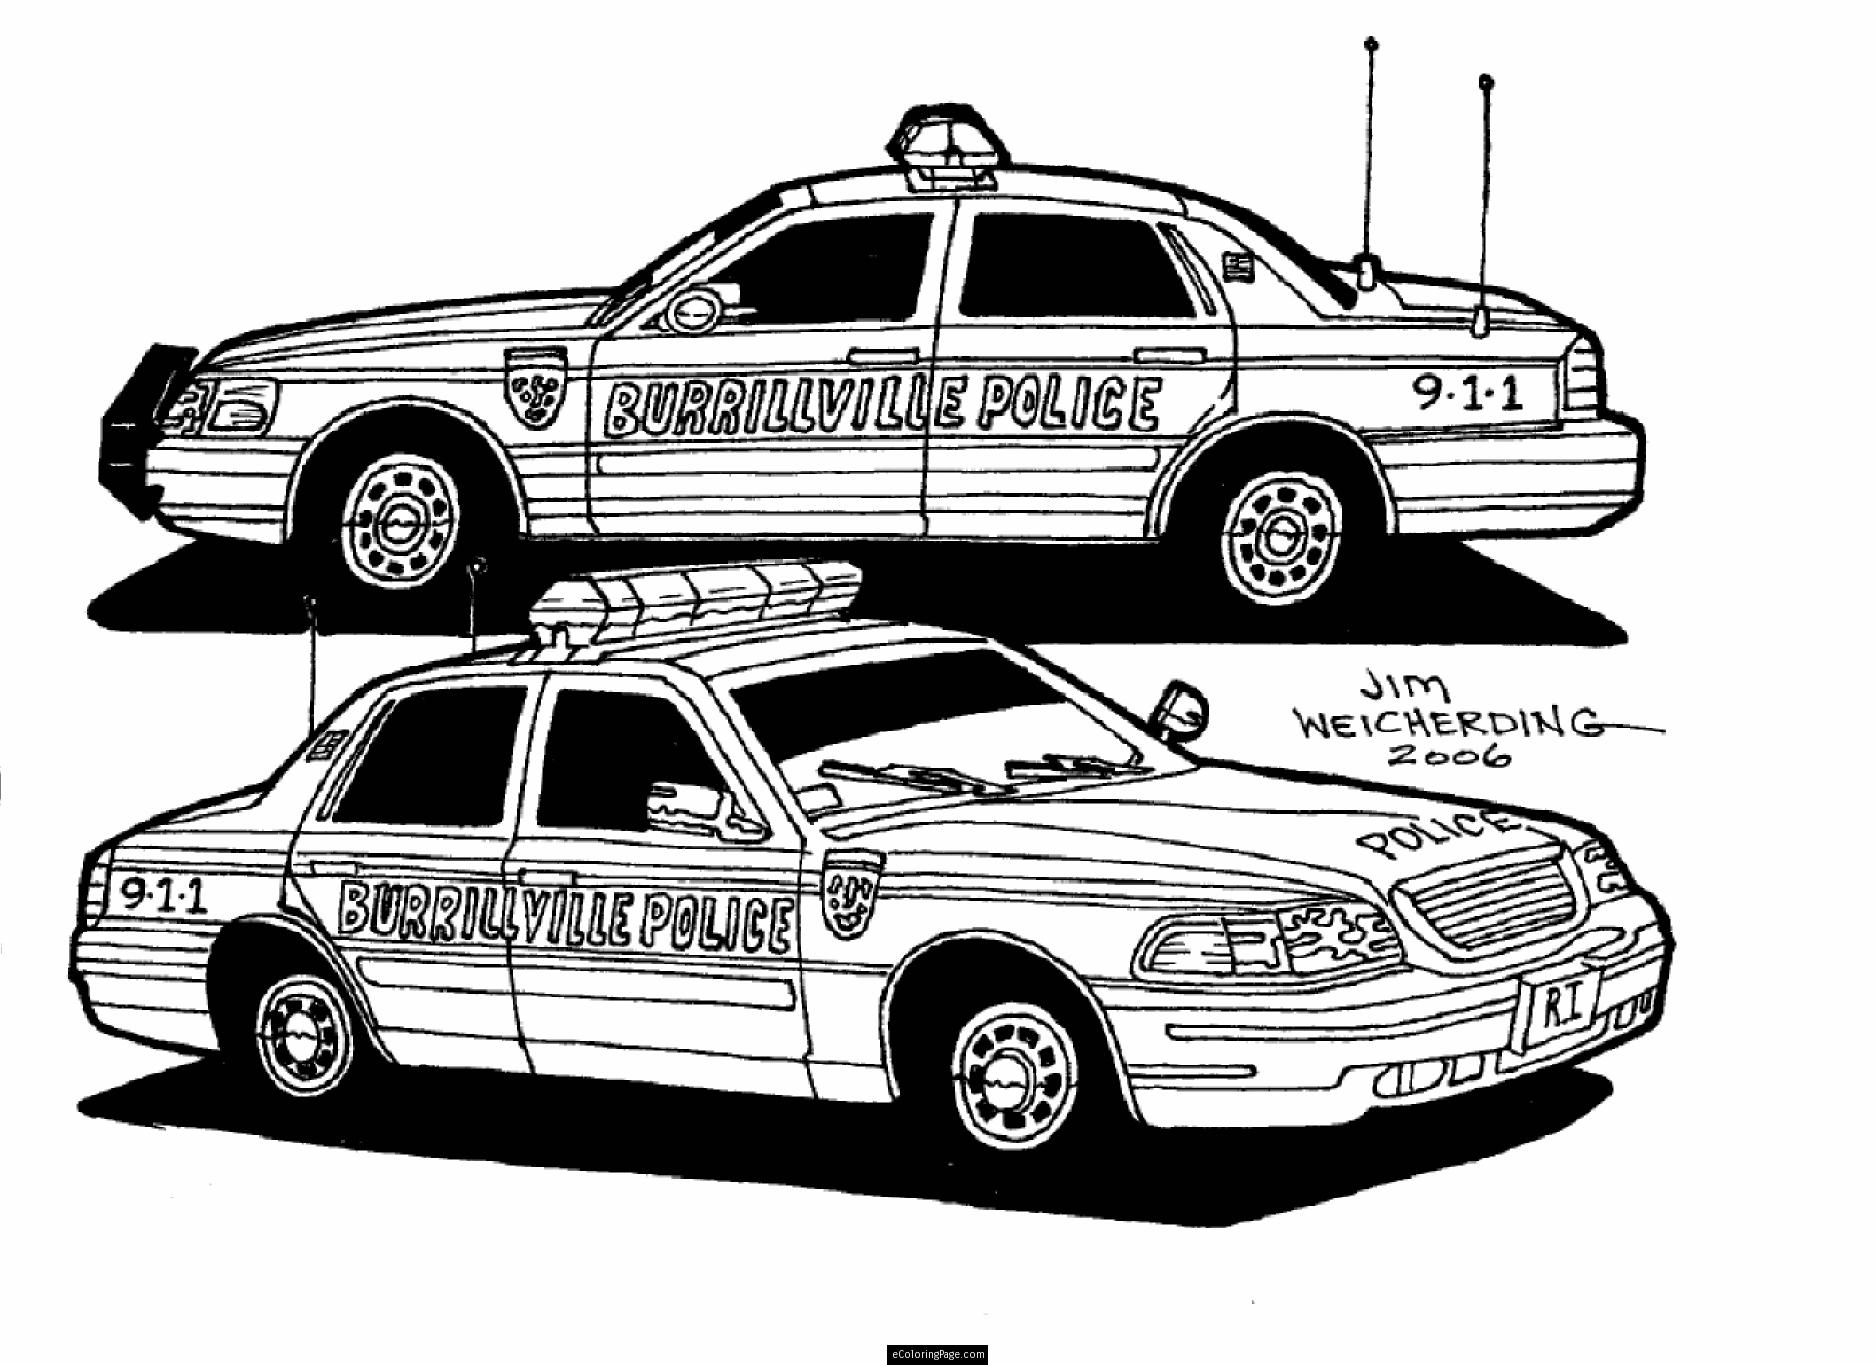 911 Coloring Pages Preschoolers | Free download on ClipArtMag